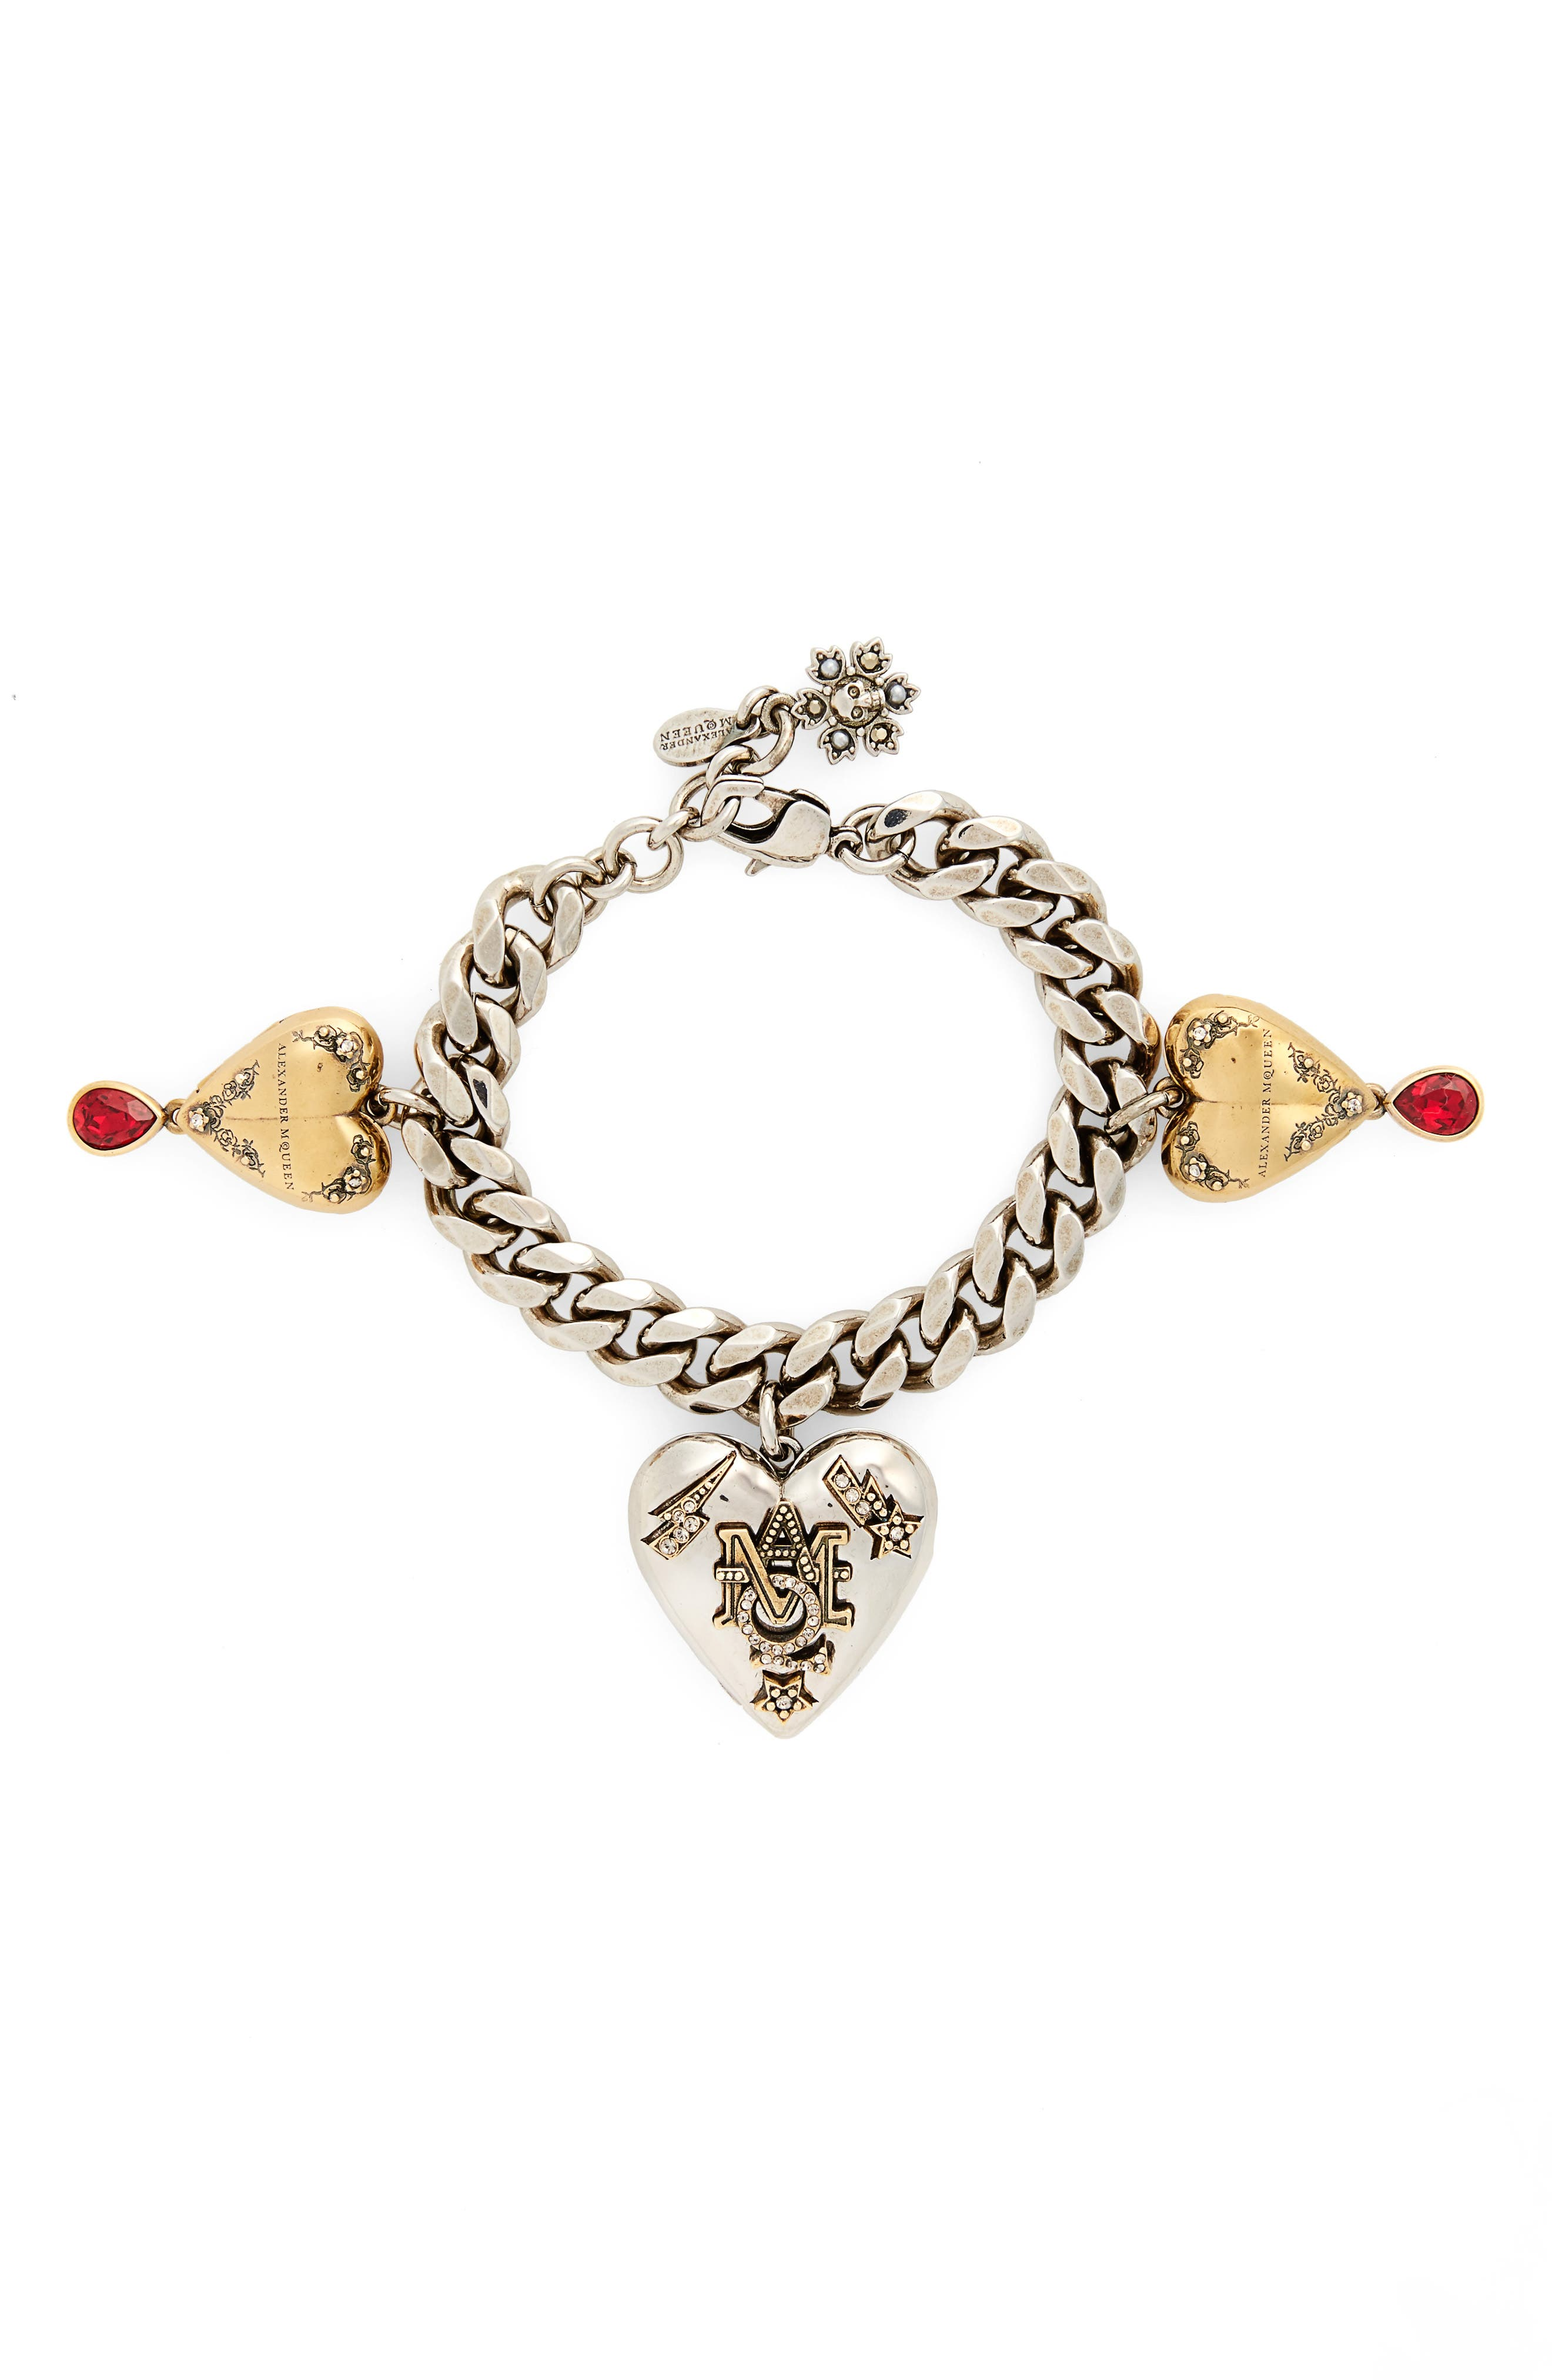 Heart Charm Bracelet,                         Main,                         color, Red / Gold